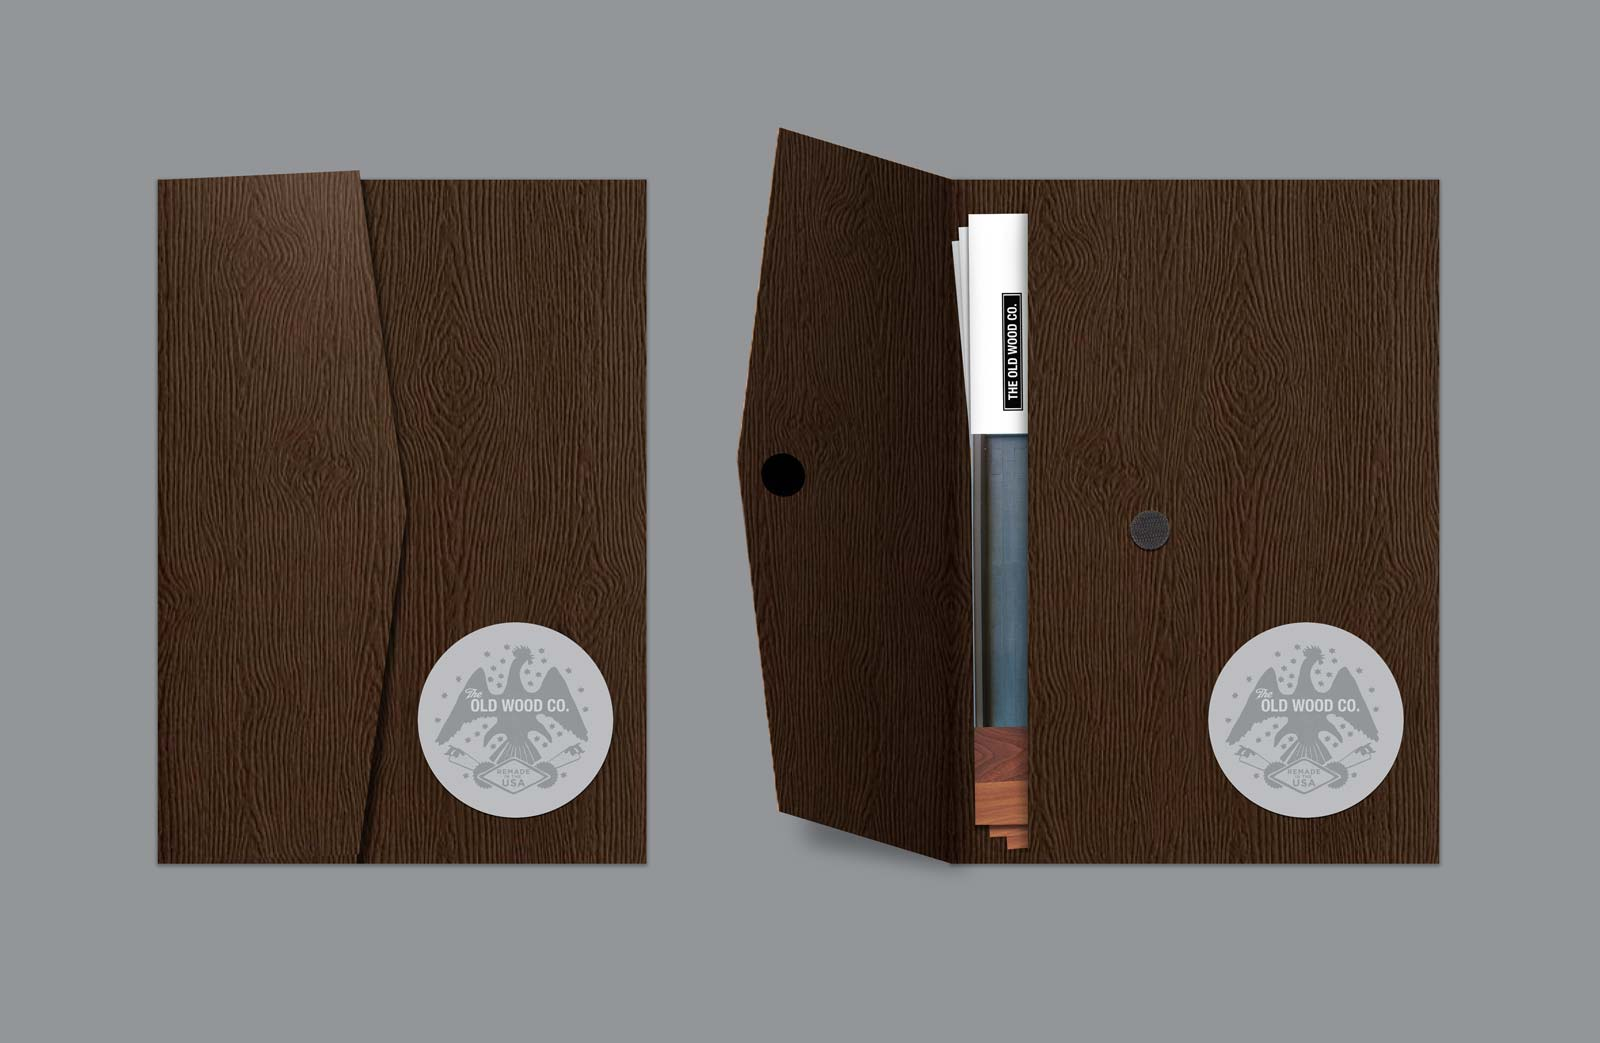 The Old Wood Company information card folder with wood grain texture and logo sticker